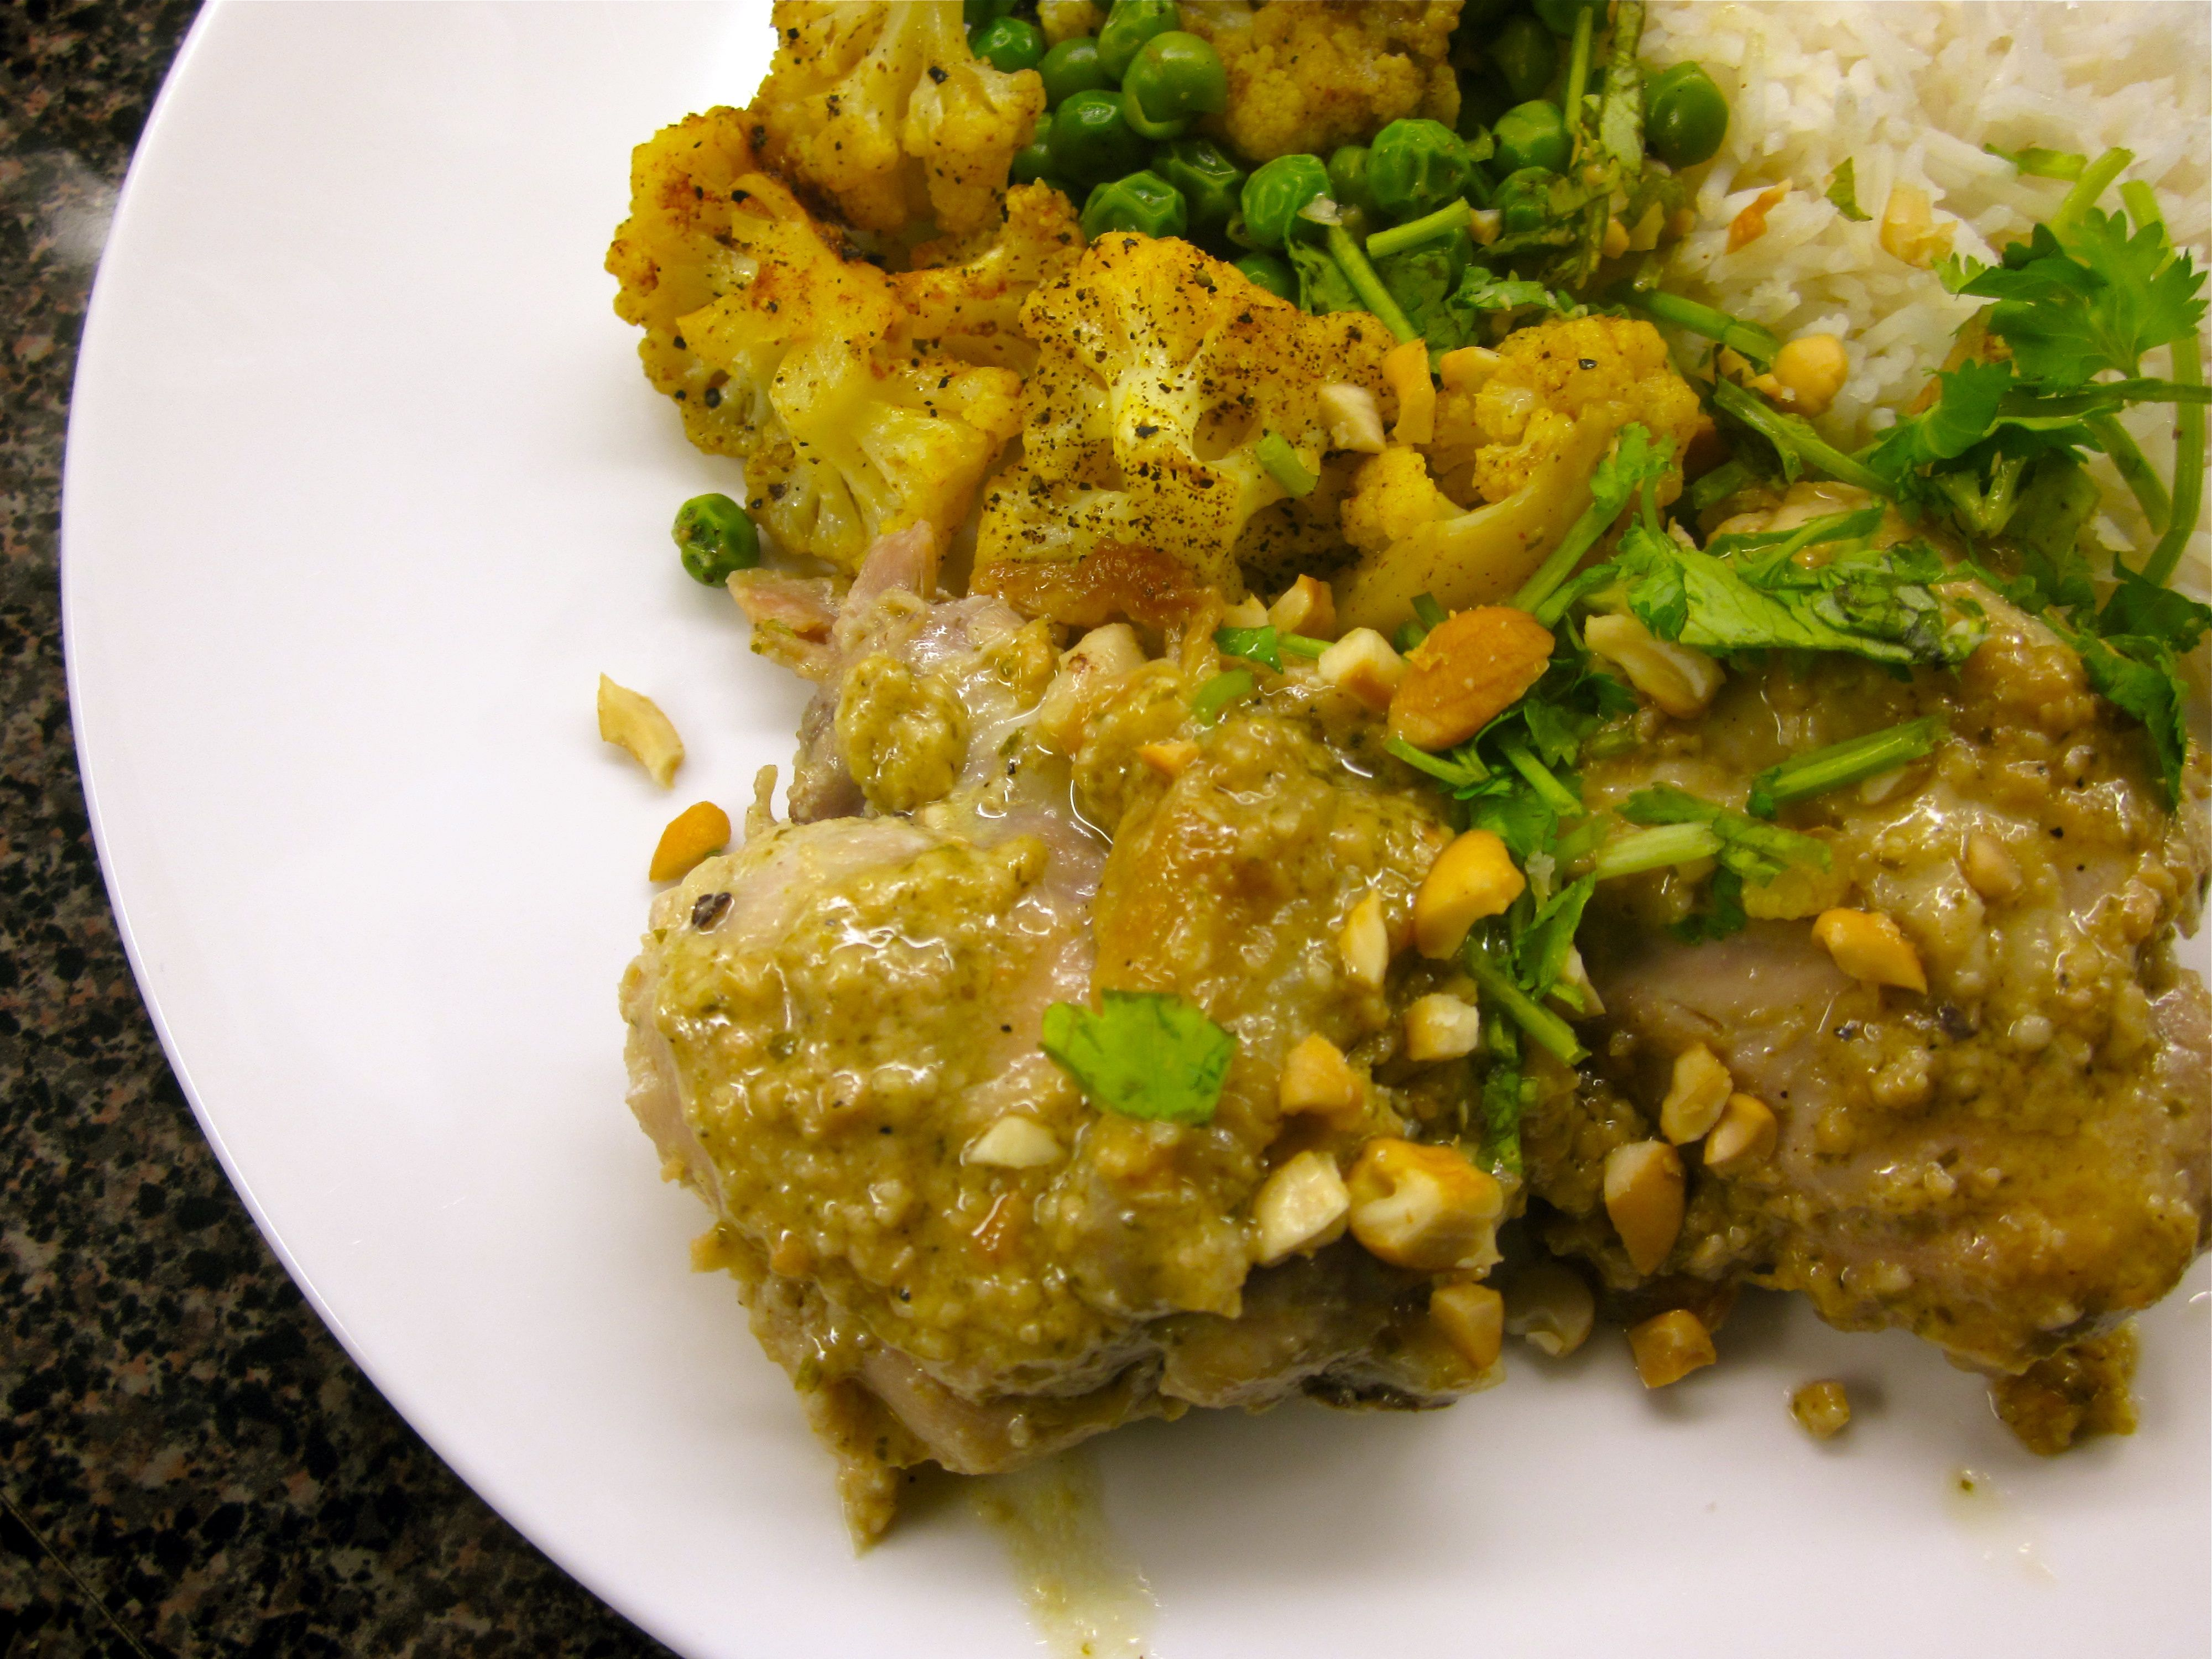 Garnish with chopped cashews and cilantro and serve with basmati rice ...